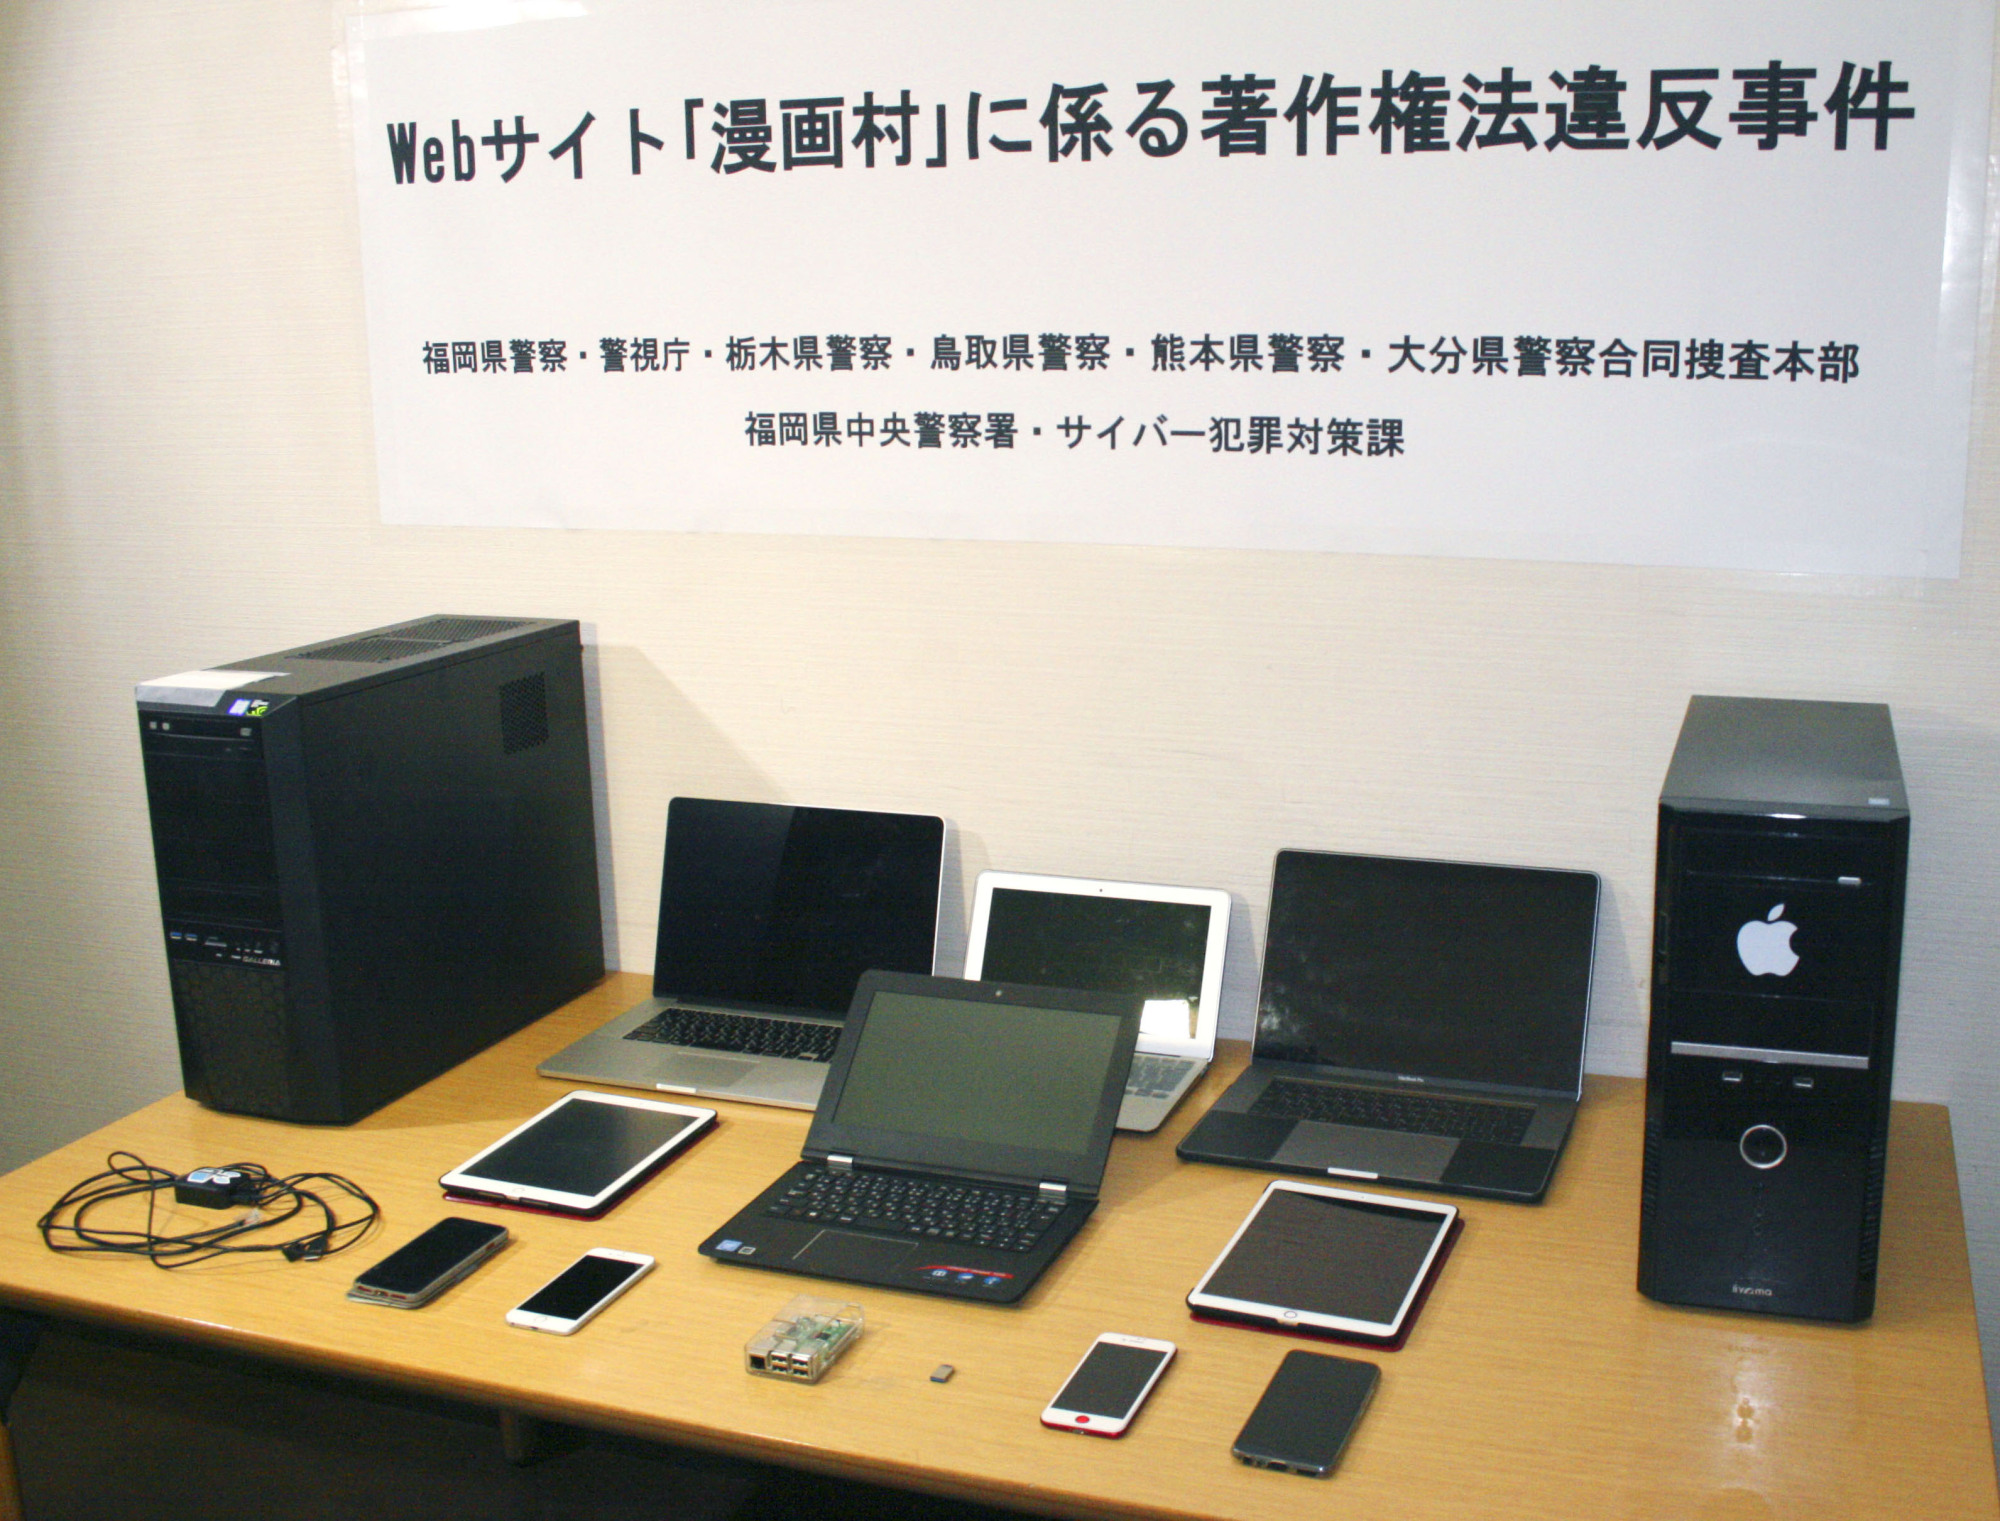 Police display items that they confiscated from alleged operators of the now-closed pirate site Manga-Mura on Wednesday in Fukuoka. | KYODO